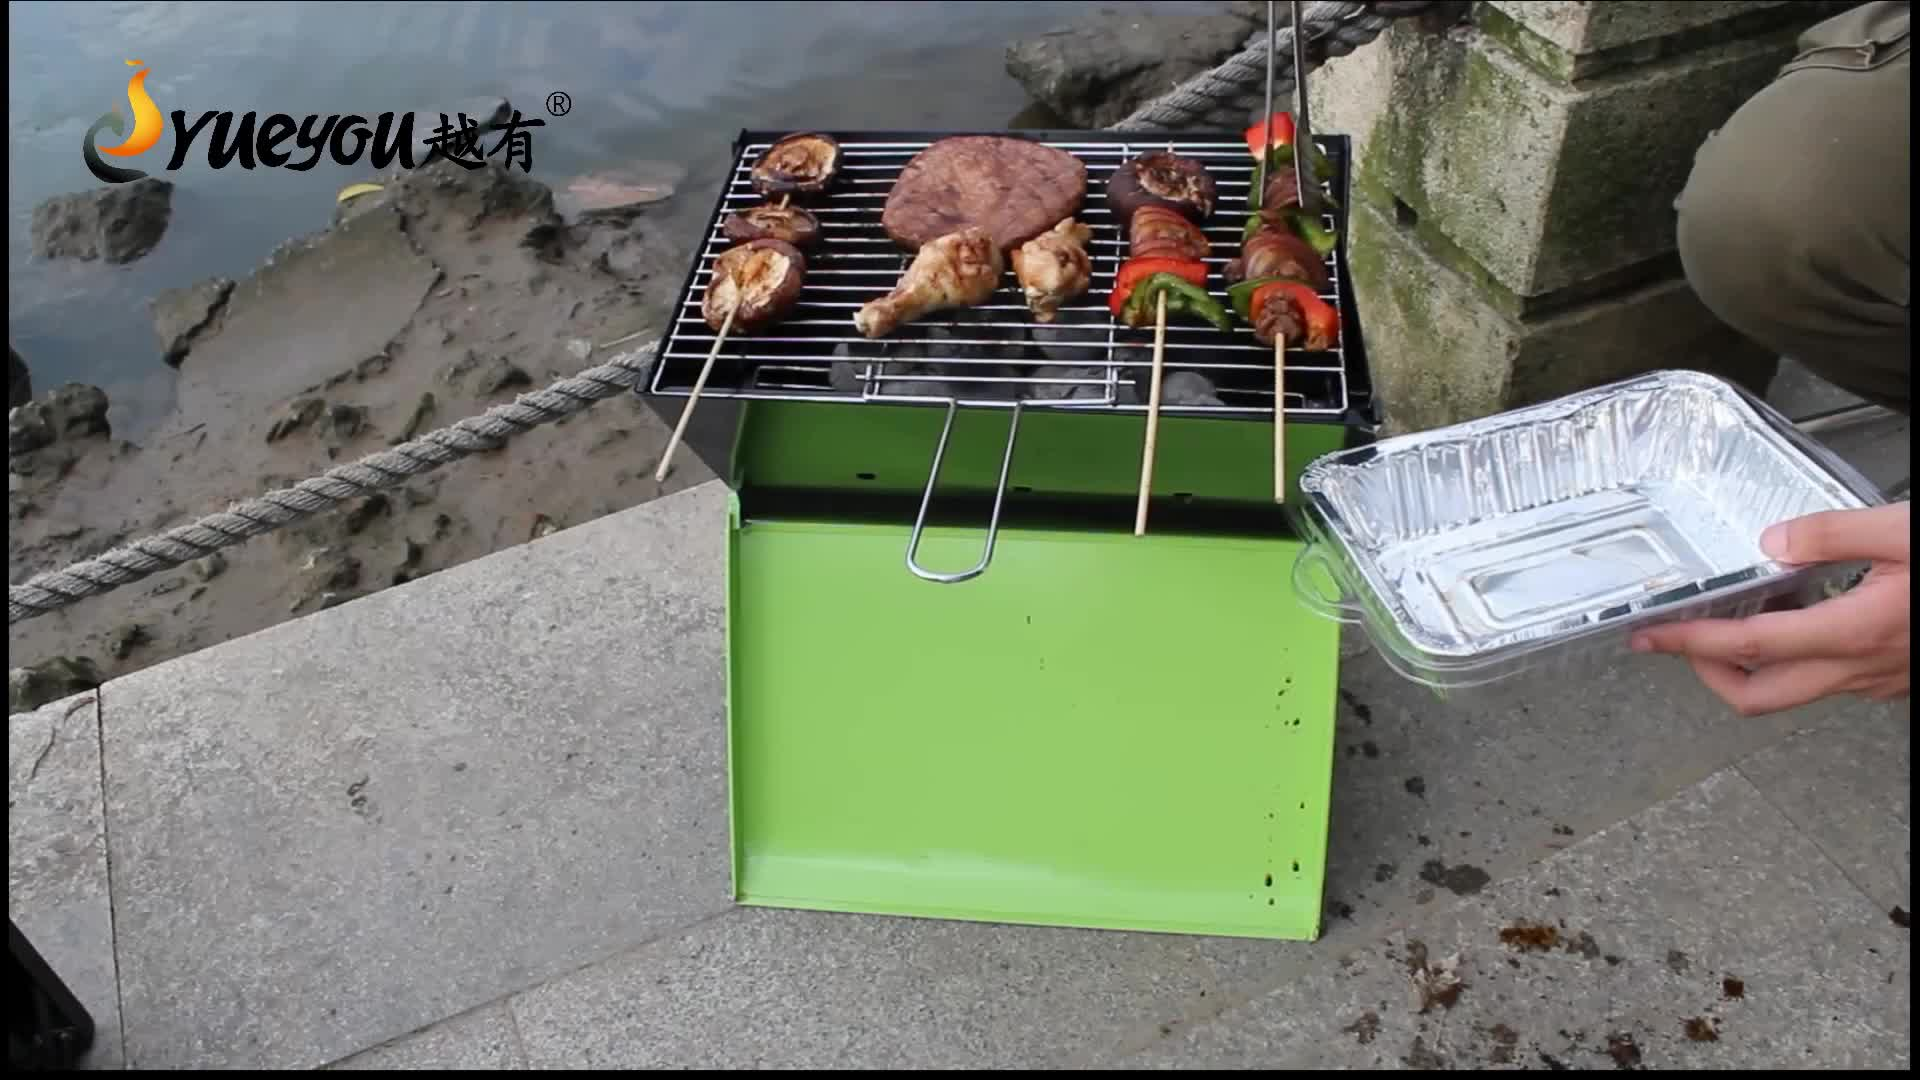 In Voorraad Opvouwbare Mini Draagbare Vouwen Camping Houtskool Barbecue Grill